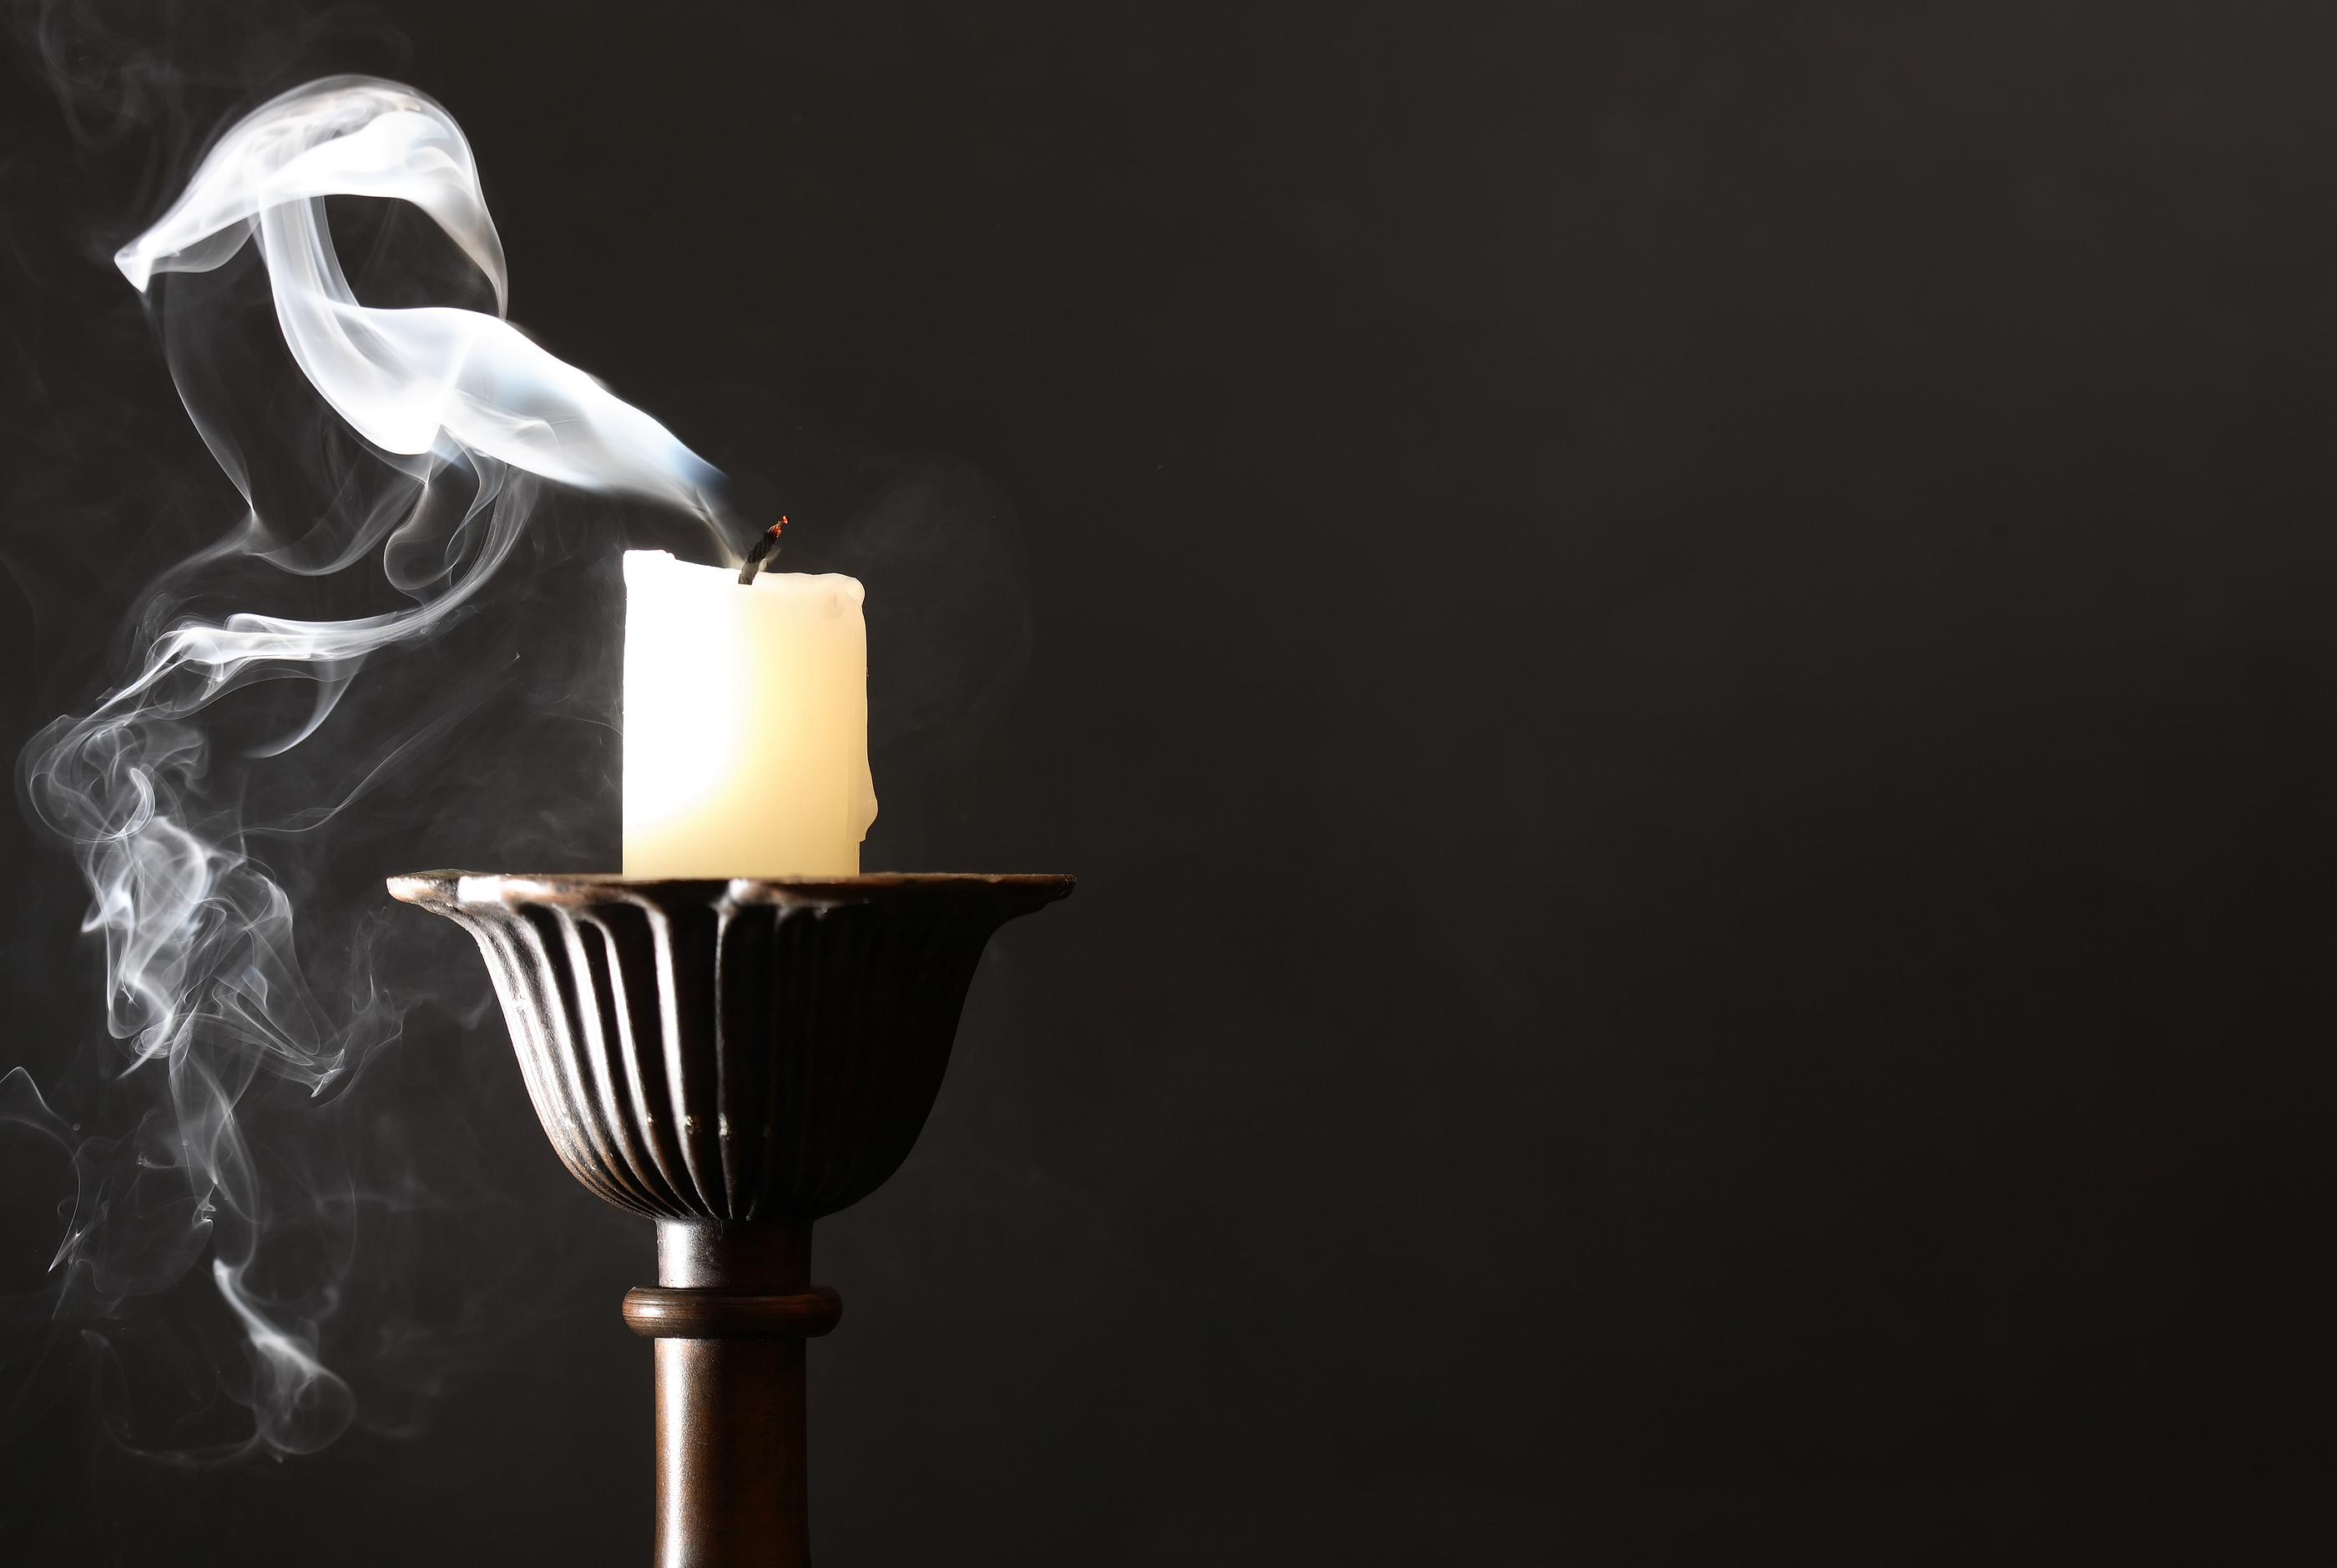 Extinguished candle in candlestick with smoke on dark background